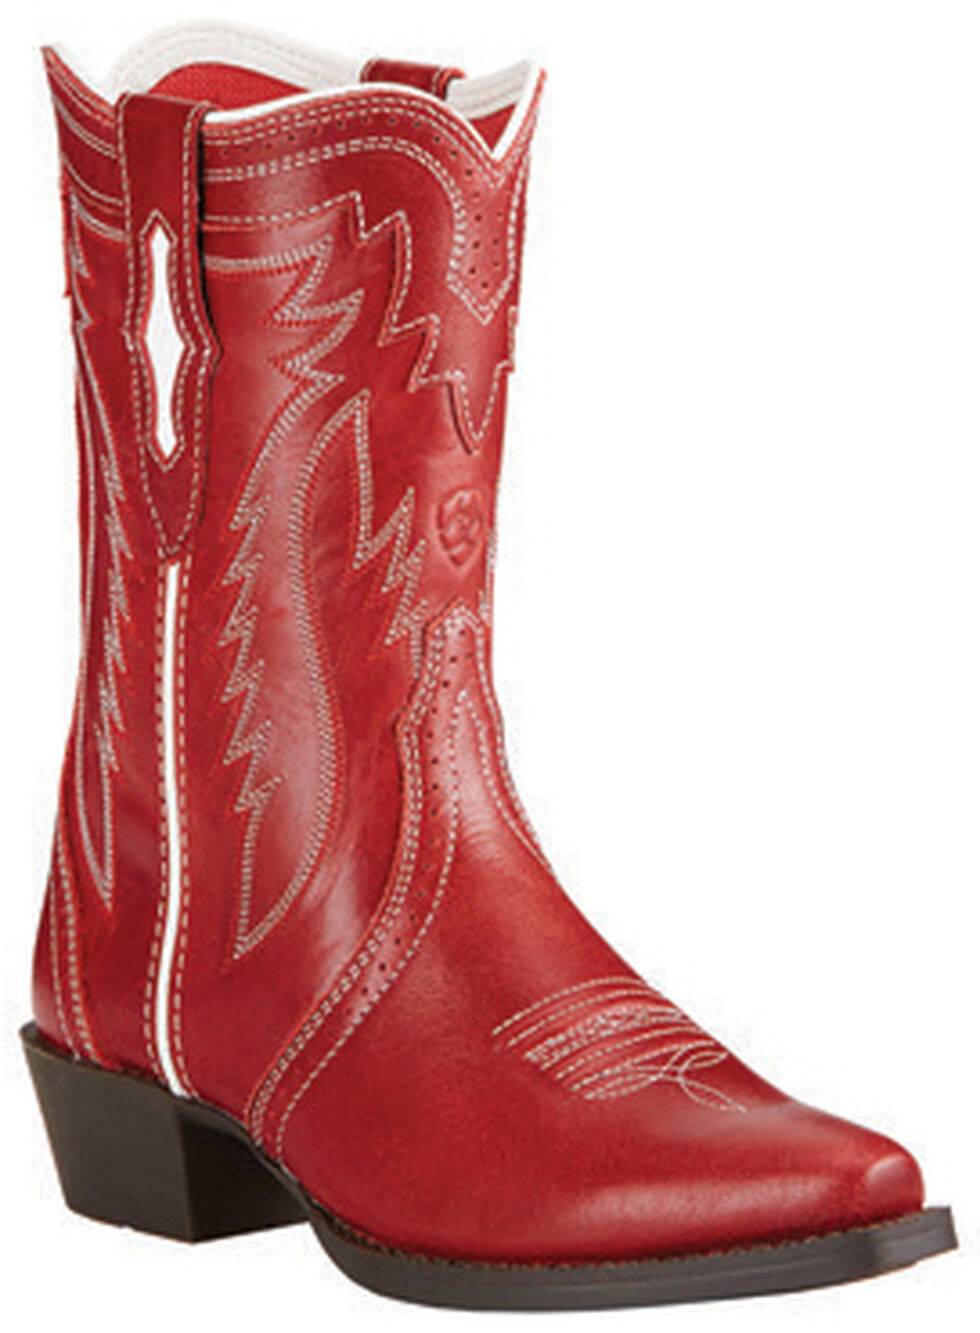 Ariat Youth Girls' Red Calamity Rodeo Cowgirl Boots - Snip Toe, Red, hi-res